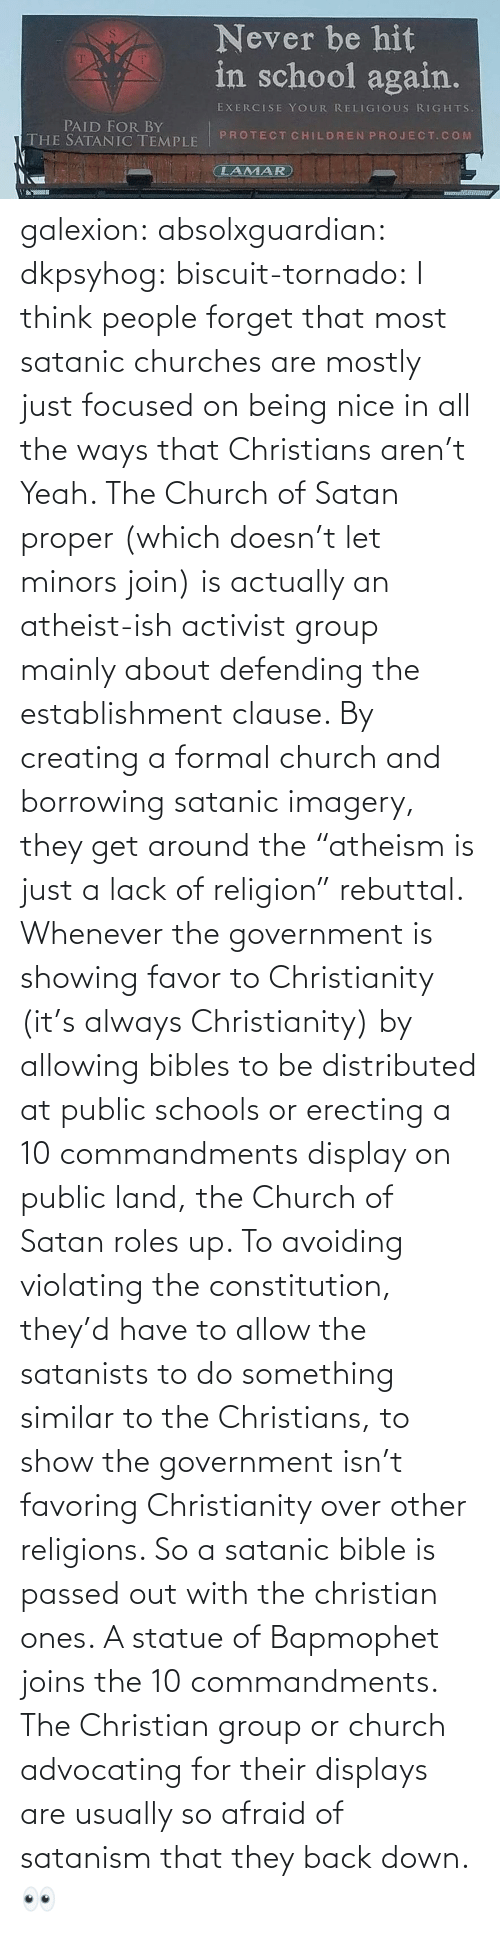 "Bible: galexion:  absolxguardian:  dkpsyhog:  biscuit-tornado:     I think people forget that most satanic churches are mostly just focused on being nice in all the ways that Christians aren't  Yeah. The Church of Satan proper (which doesn't let minors join) is actually an atheist-ish activist group mainly about defending the establishment clause. By creating a formal church and borrowing satanic imagery, they get around the ""atheism is just a lack of religion"" rebuttal. Whenever the government is showing favor to Christianity (it's always Christianity) by allowing bibles to be distributed at public schools or erecting a 10 commandments display on public land, the Church of Satan roles up. To avoiding violating the constitution, they'd have to allow the satanists to do something similar to the Christians, to show the government isn't favoring Christianity over other religions. So a satanic bible is passed out with the christian ones. A statue of Bapmophet joins the 10 commandments. The Christian group or church advocating for their displays are usually so afraid of satanism that they back down.   👀"